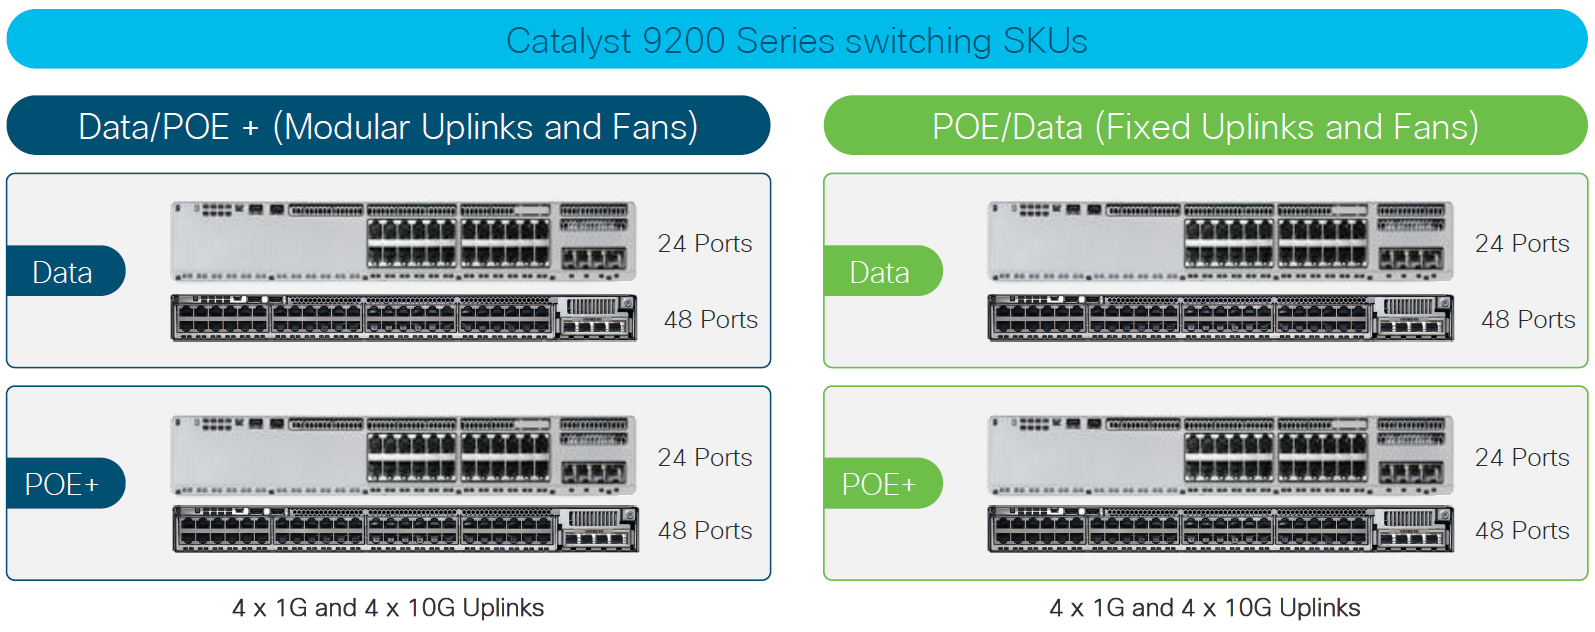 Catalyst 9200 Series Switching SKUs